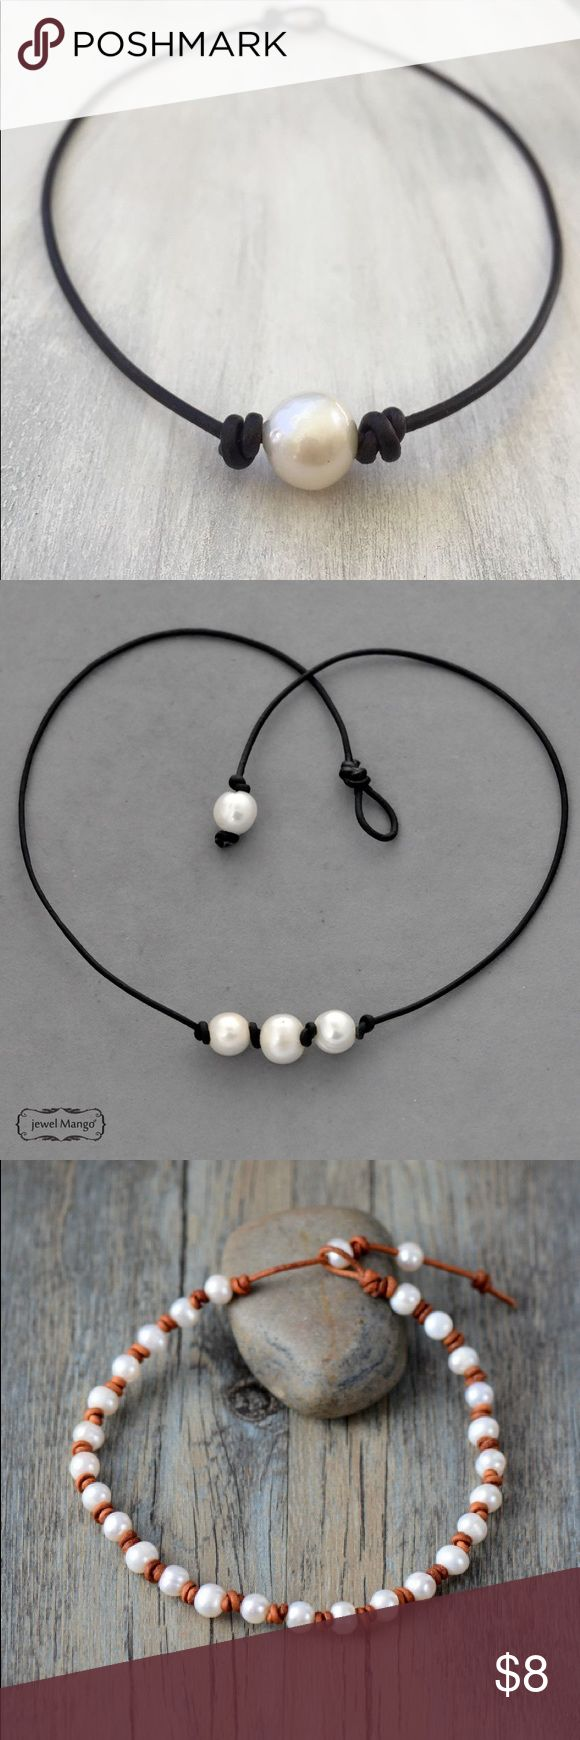 pearl necklaces/chokers super cute Jewelry Necklaces